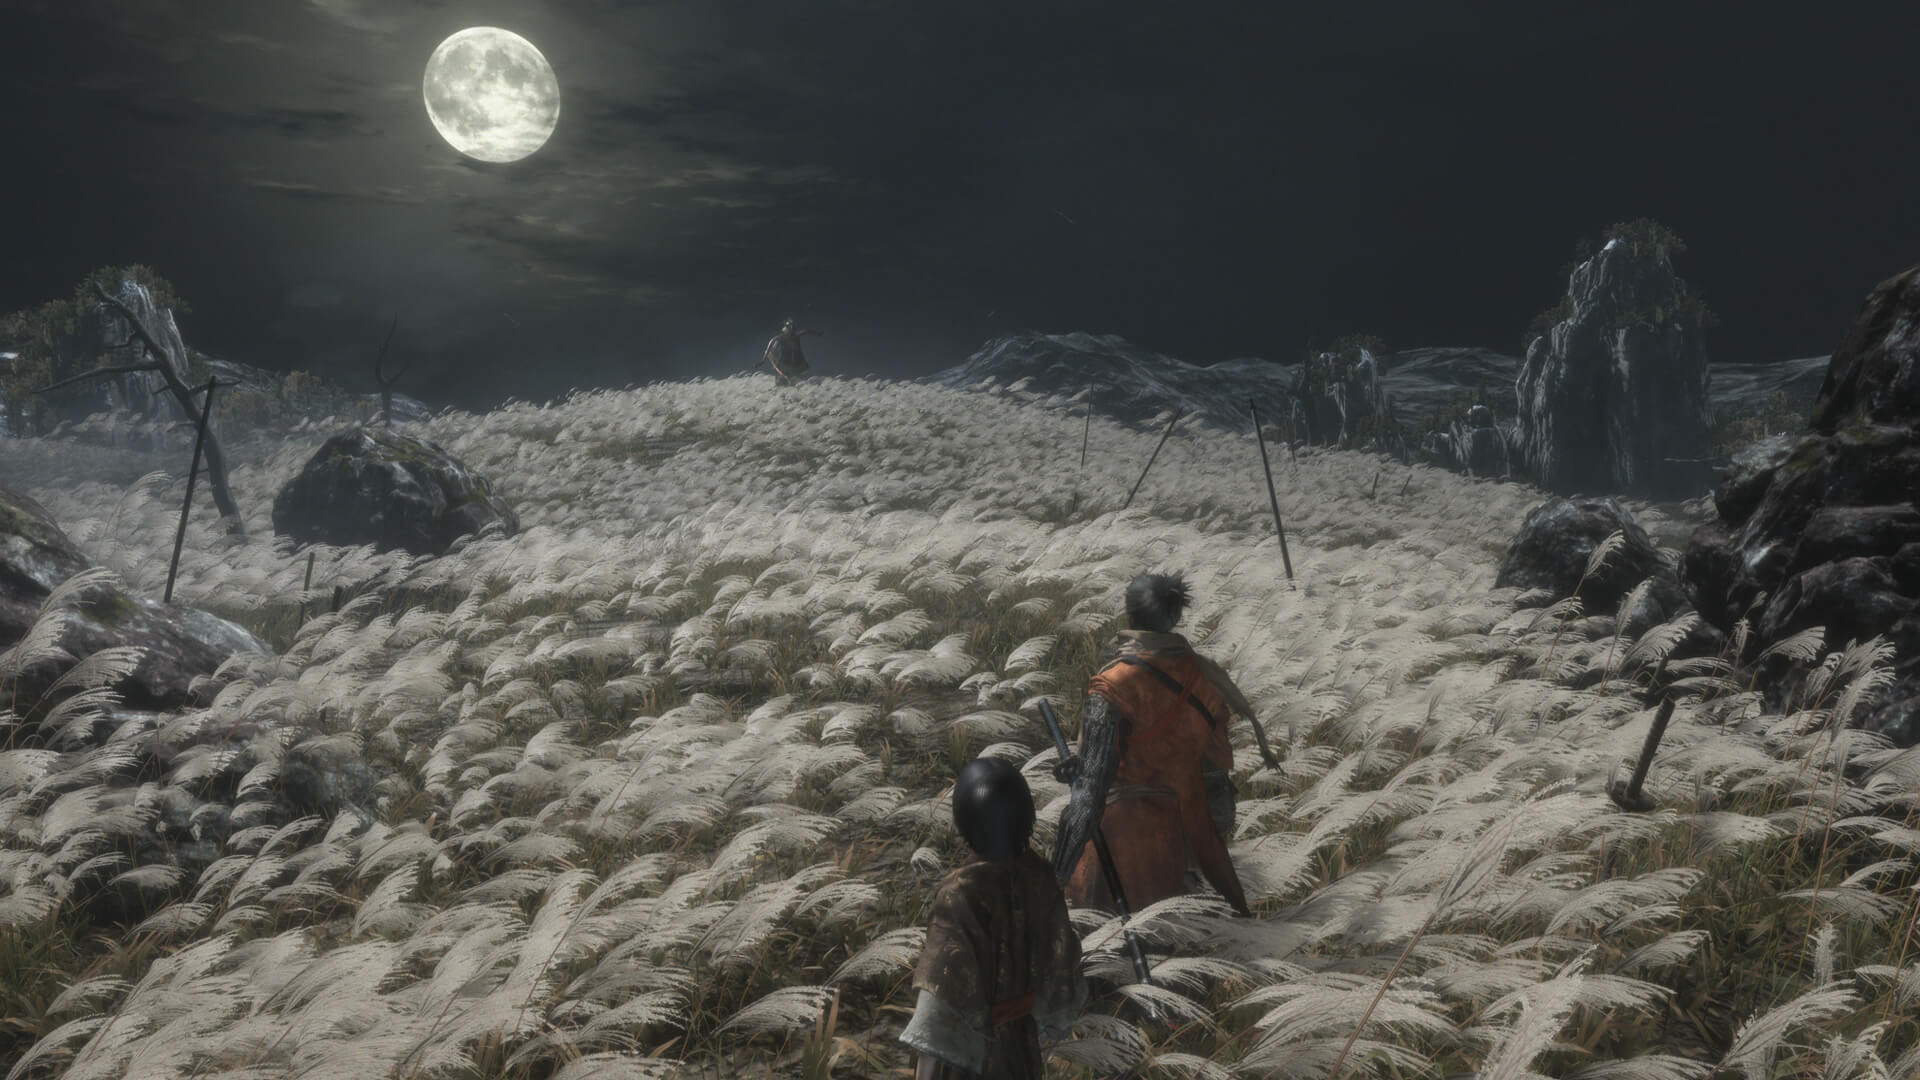 Sekiro Shadows Die Twice releases this week